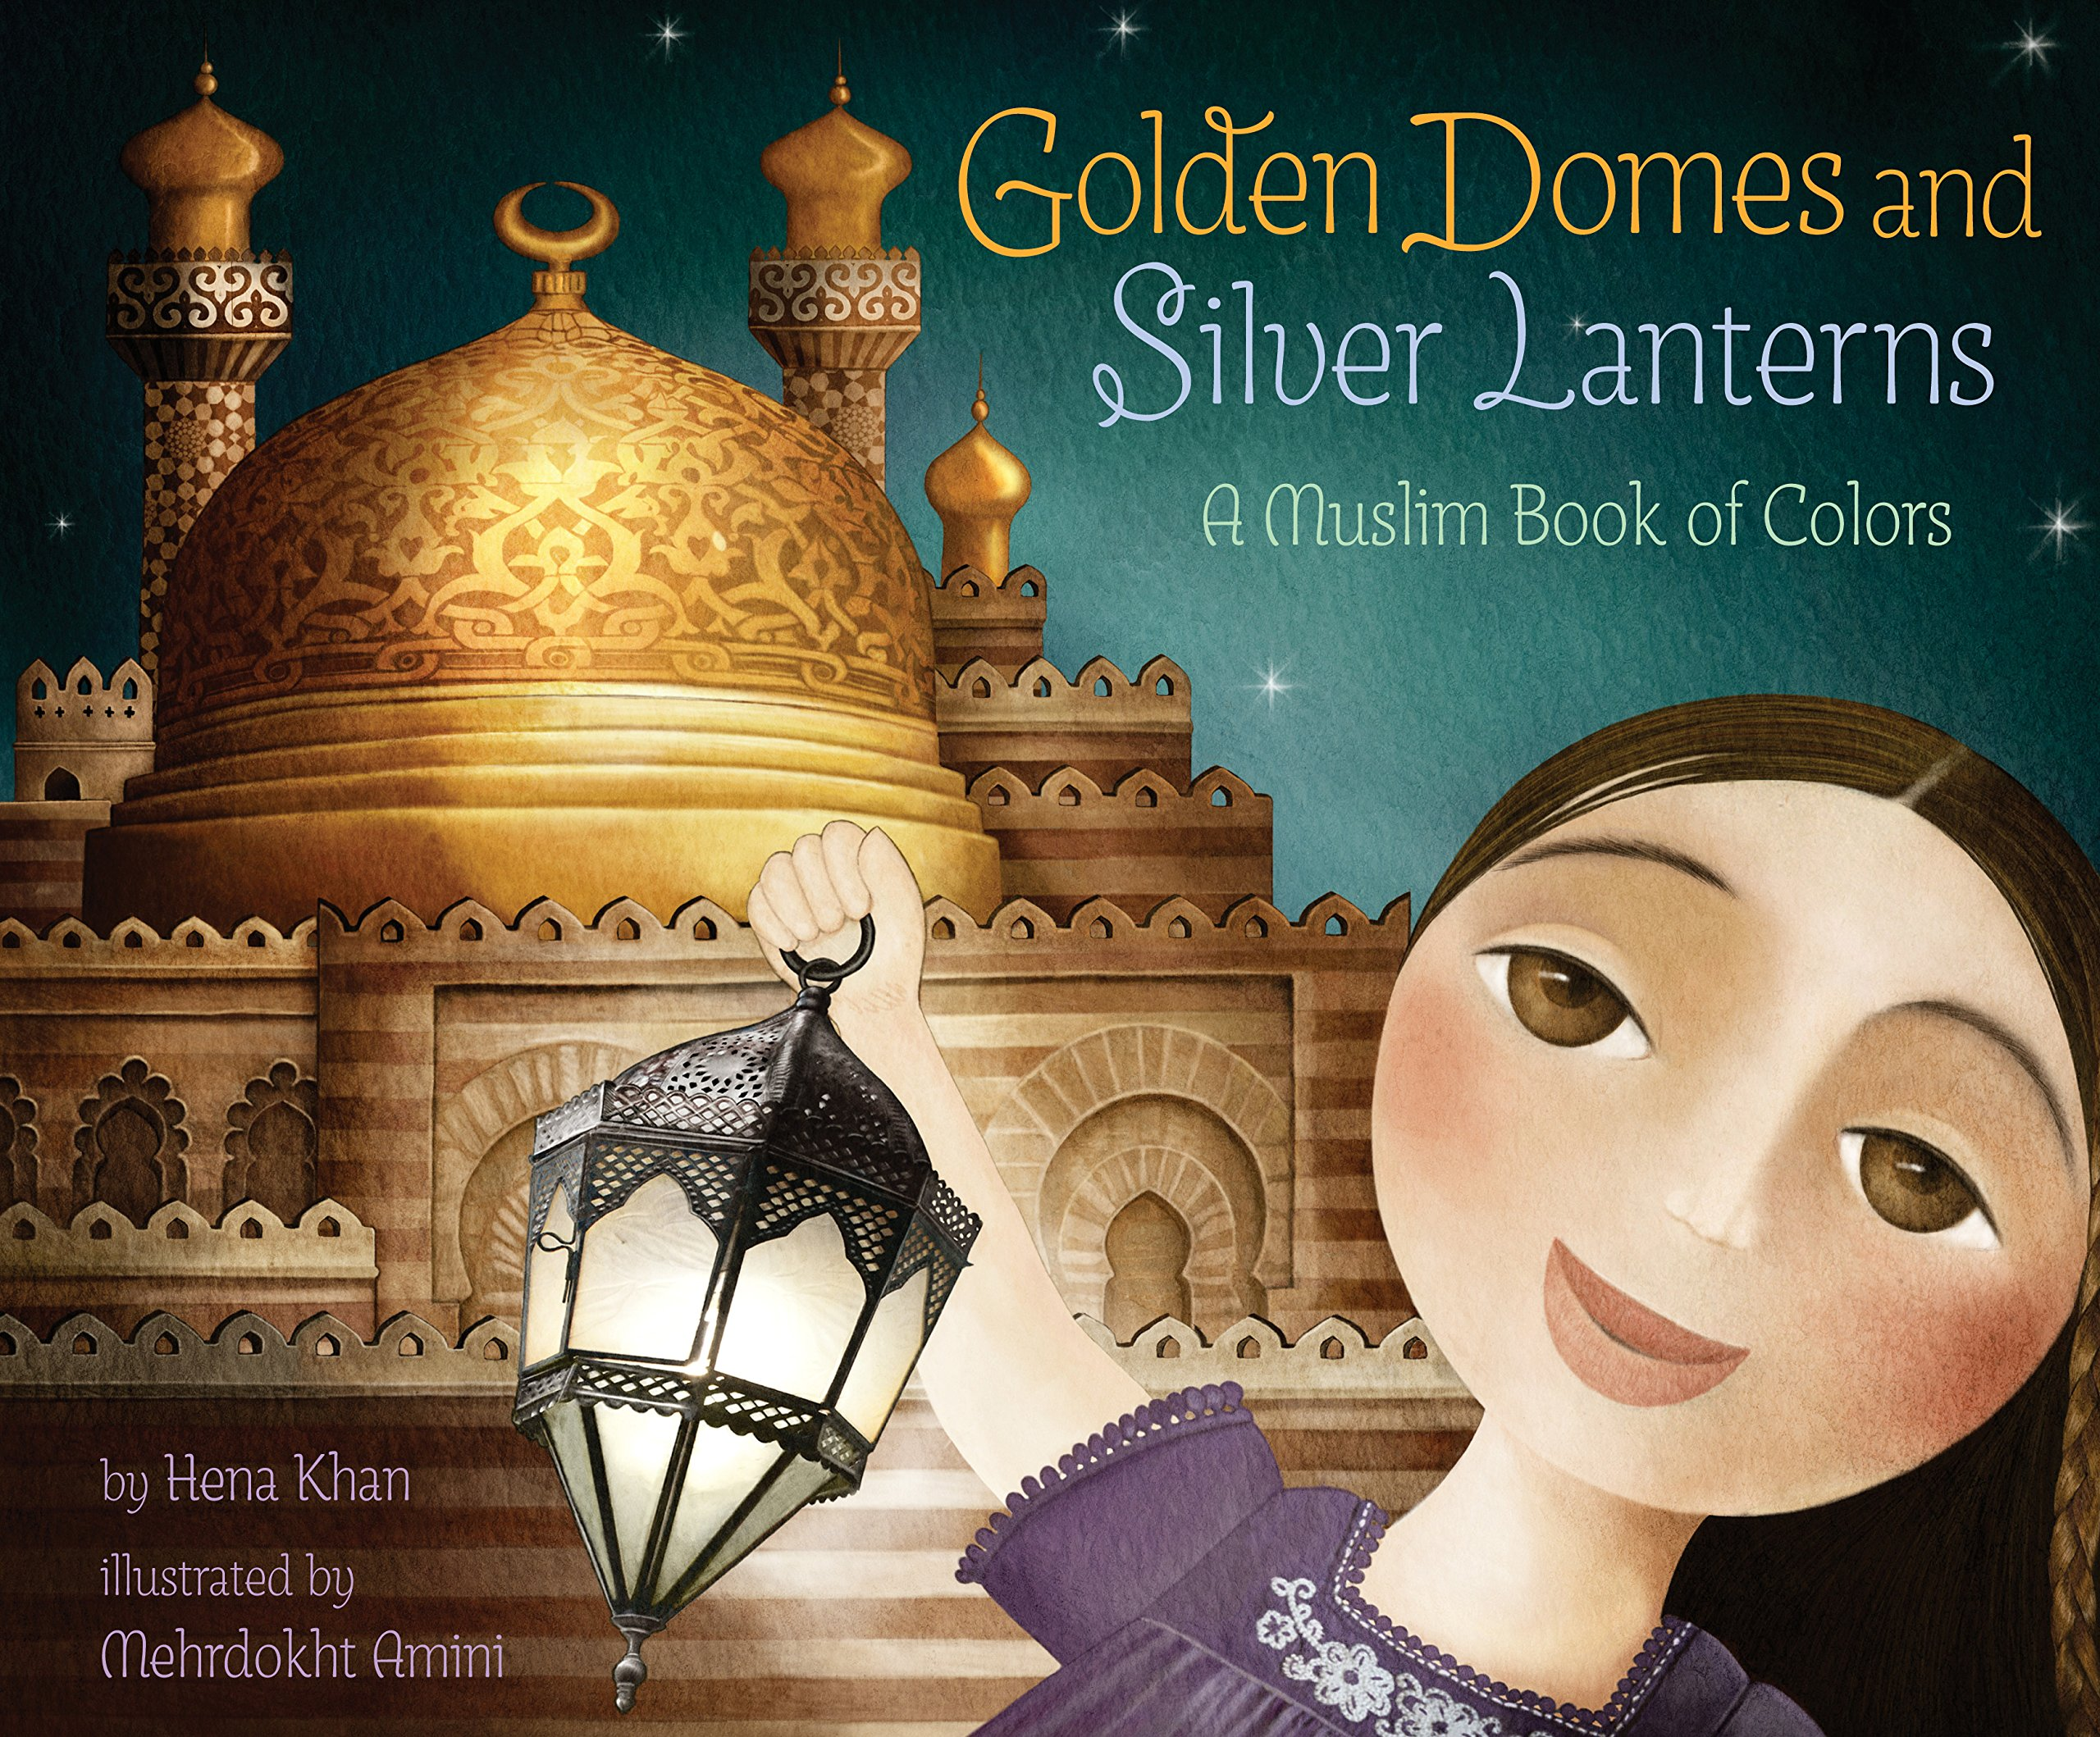 Image result for silver lanterns golden domes